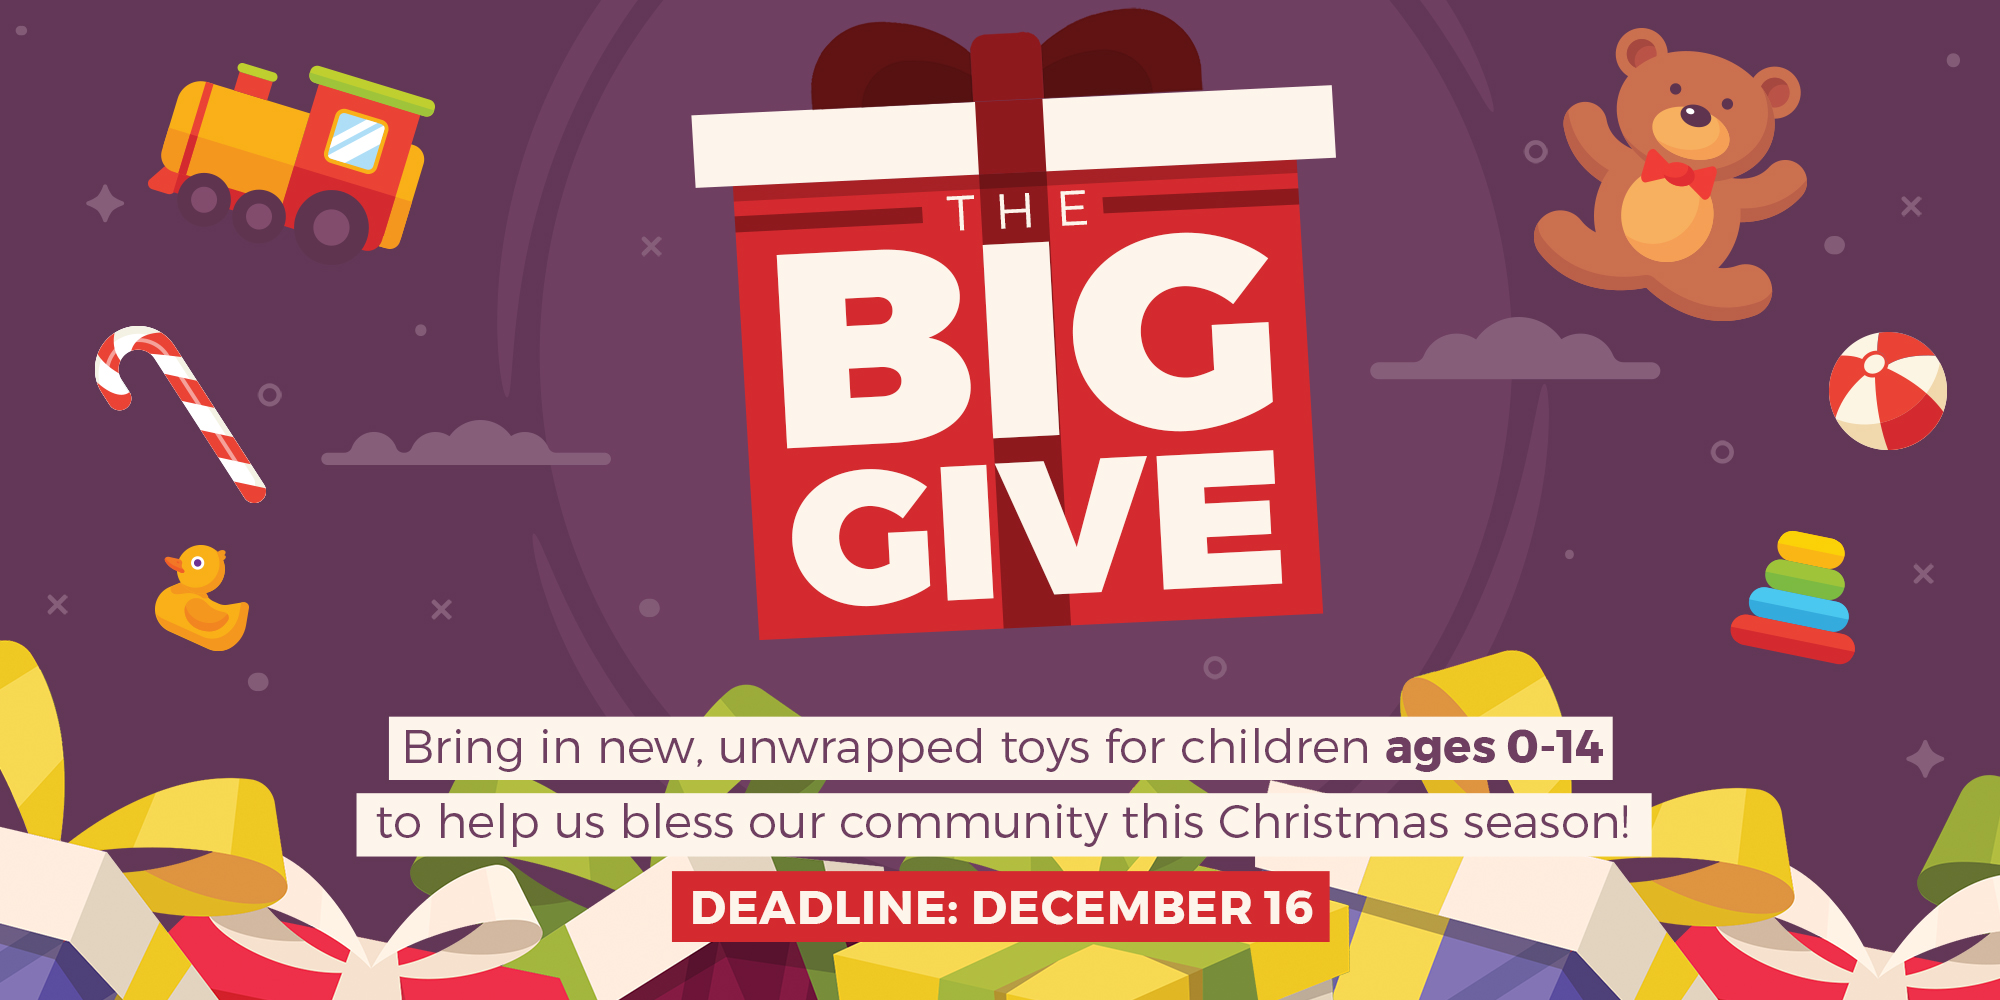 The Big Give | Bring in new, unwrapped toys for children ages 0-14 to help us bless our community this Christmas Season! | Deadline: December 16